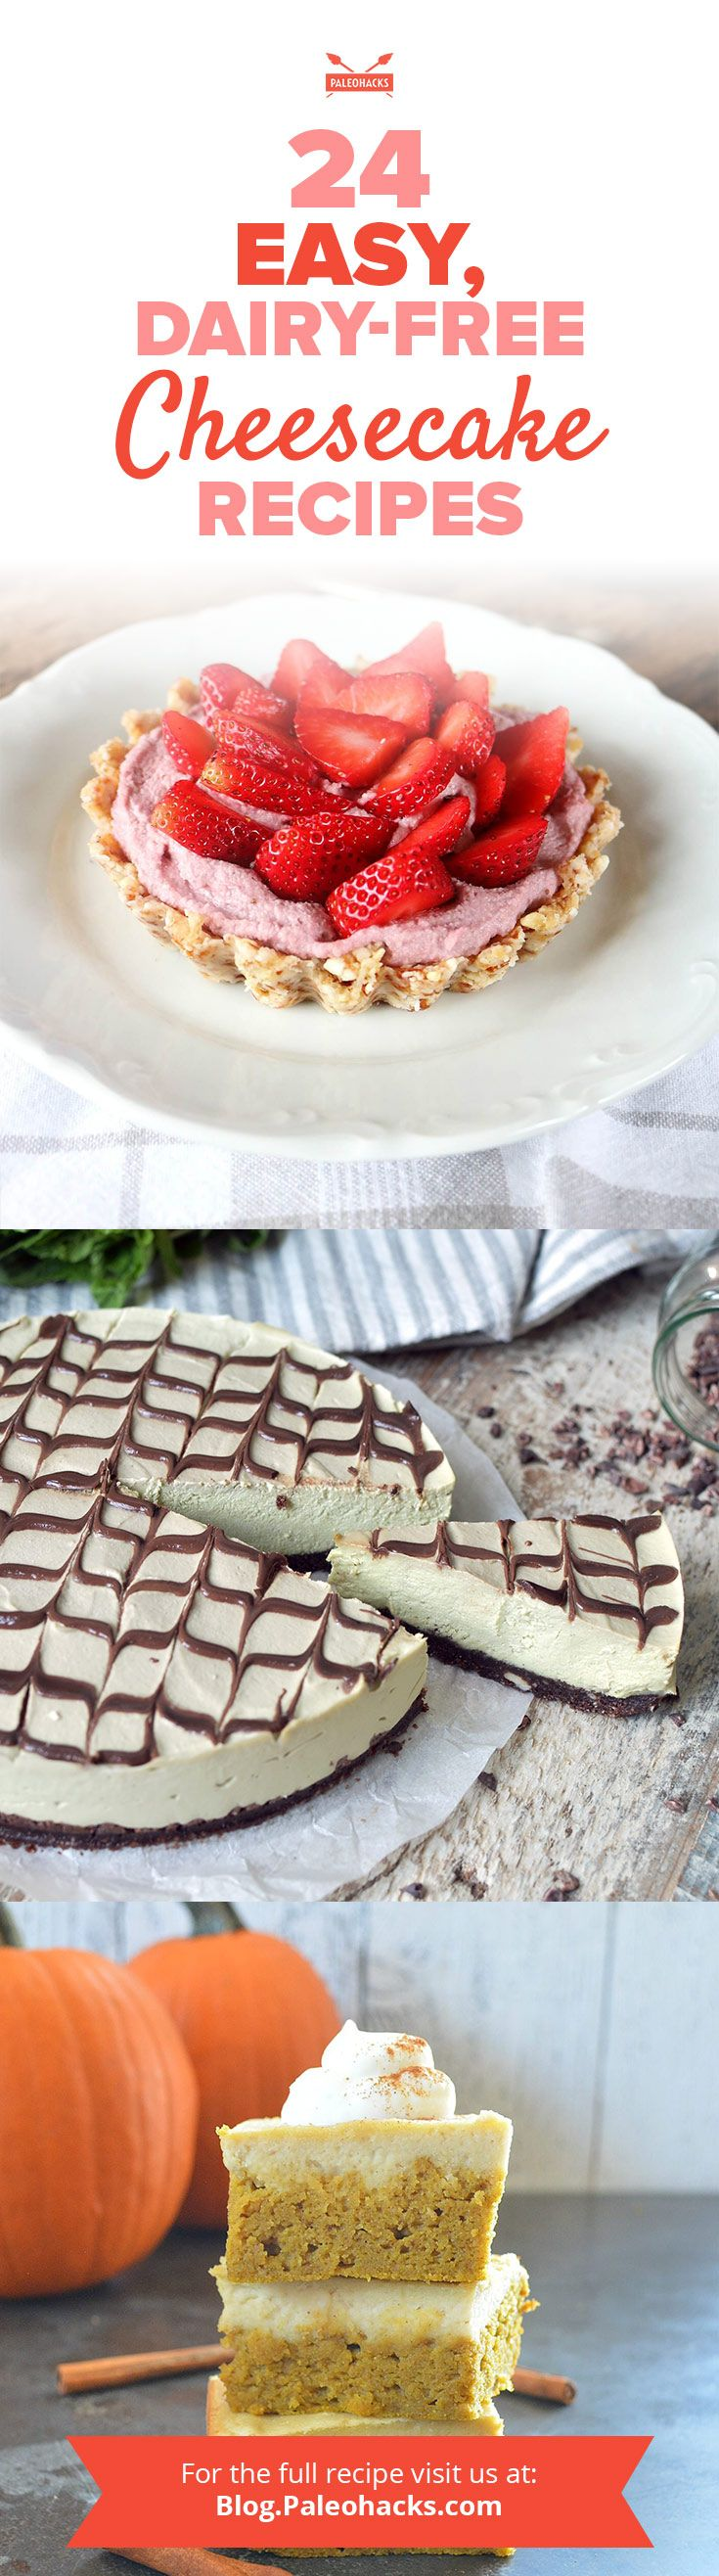 Admit it – there's almost nothing as alluring as a bite of dense, sweet and creamy cheesecake. Get the recipes here: http://paleo.co/cheesecakercps